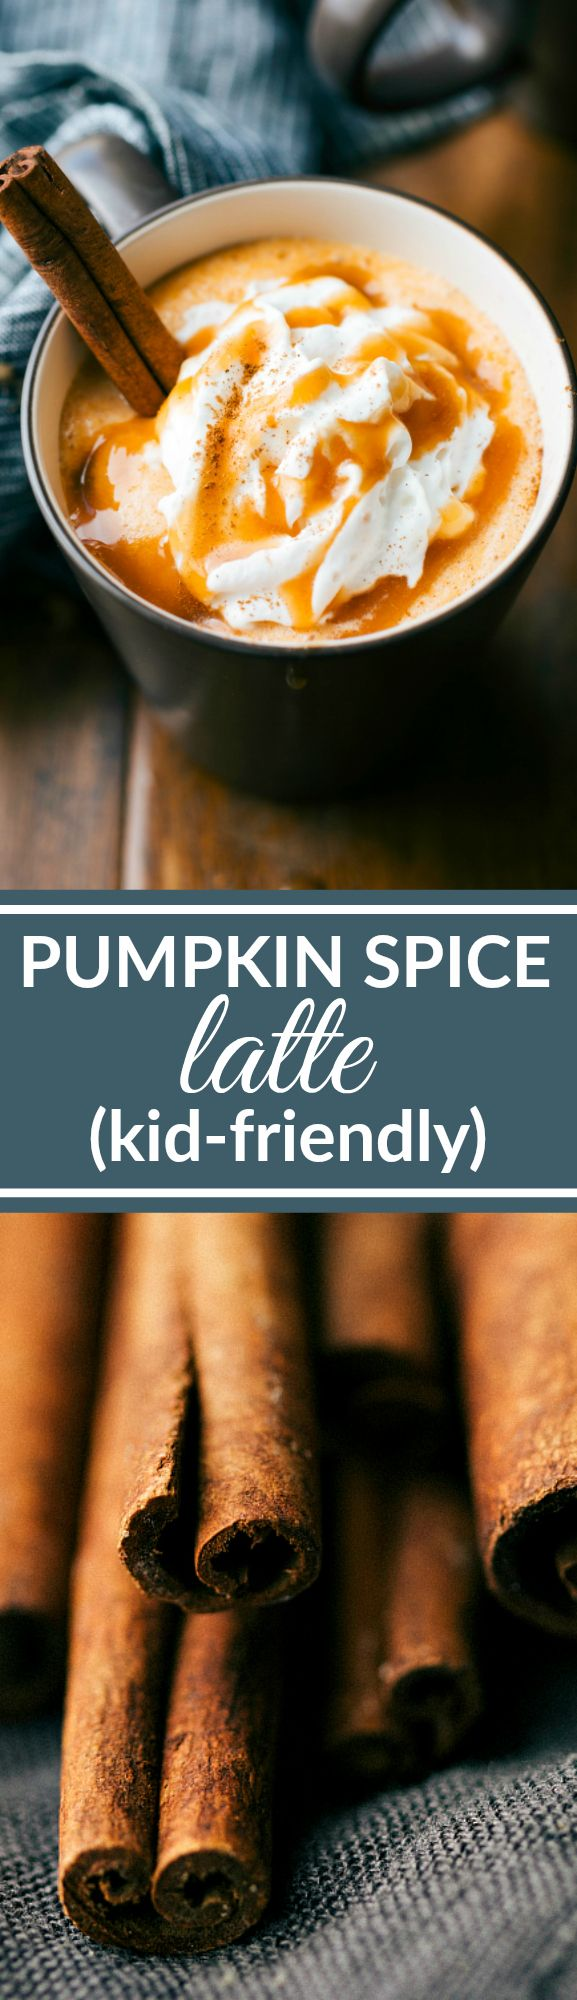 This delicious and easy to make kid-friendly pumpkin spice latte skips out on the coffee but adds the fun! Make the step-by-step recipe for the whole family this fall!